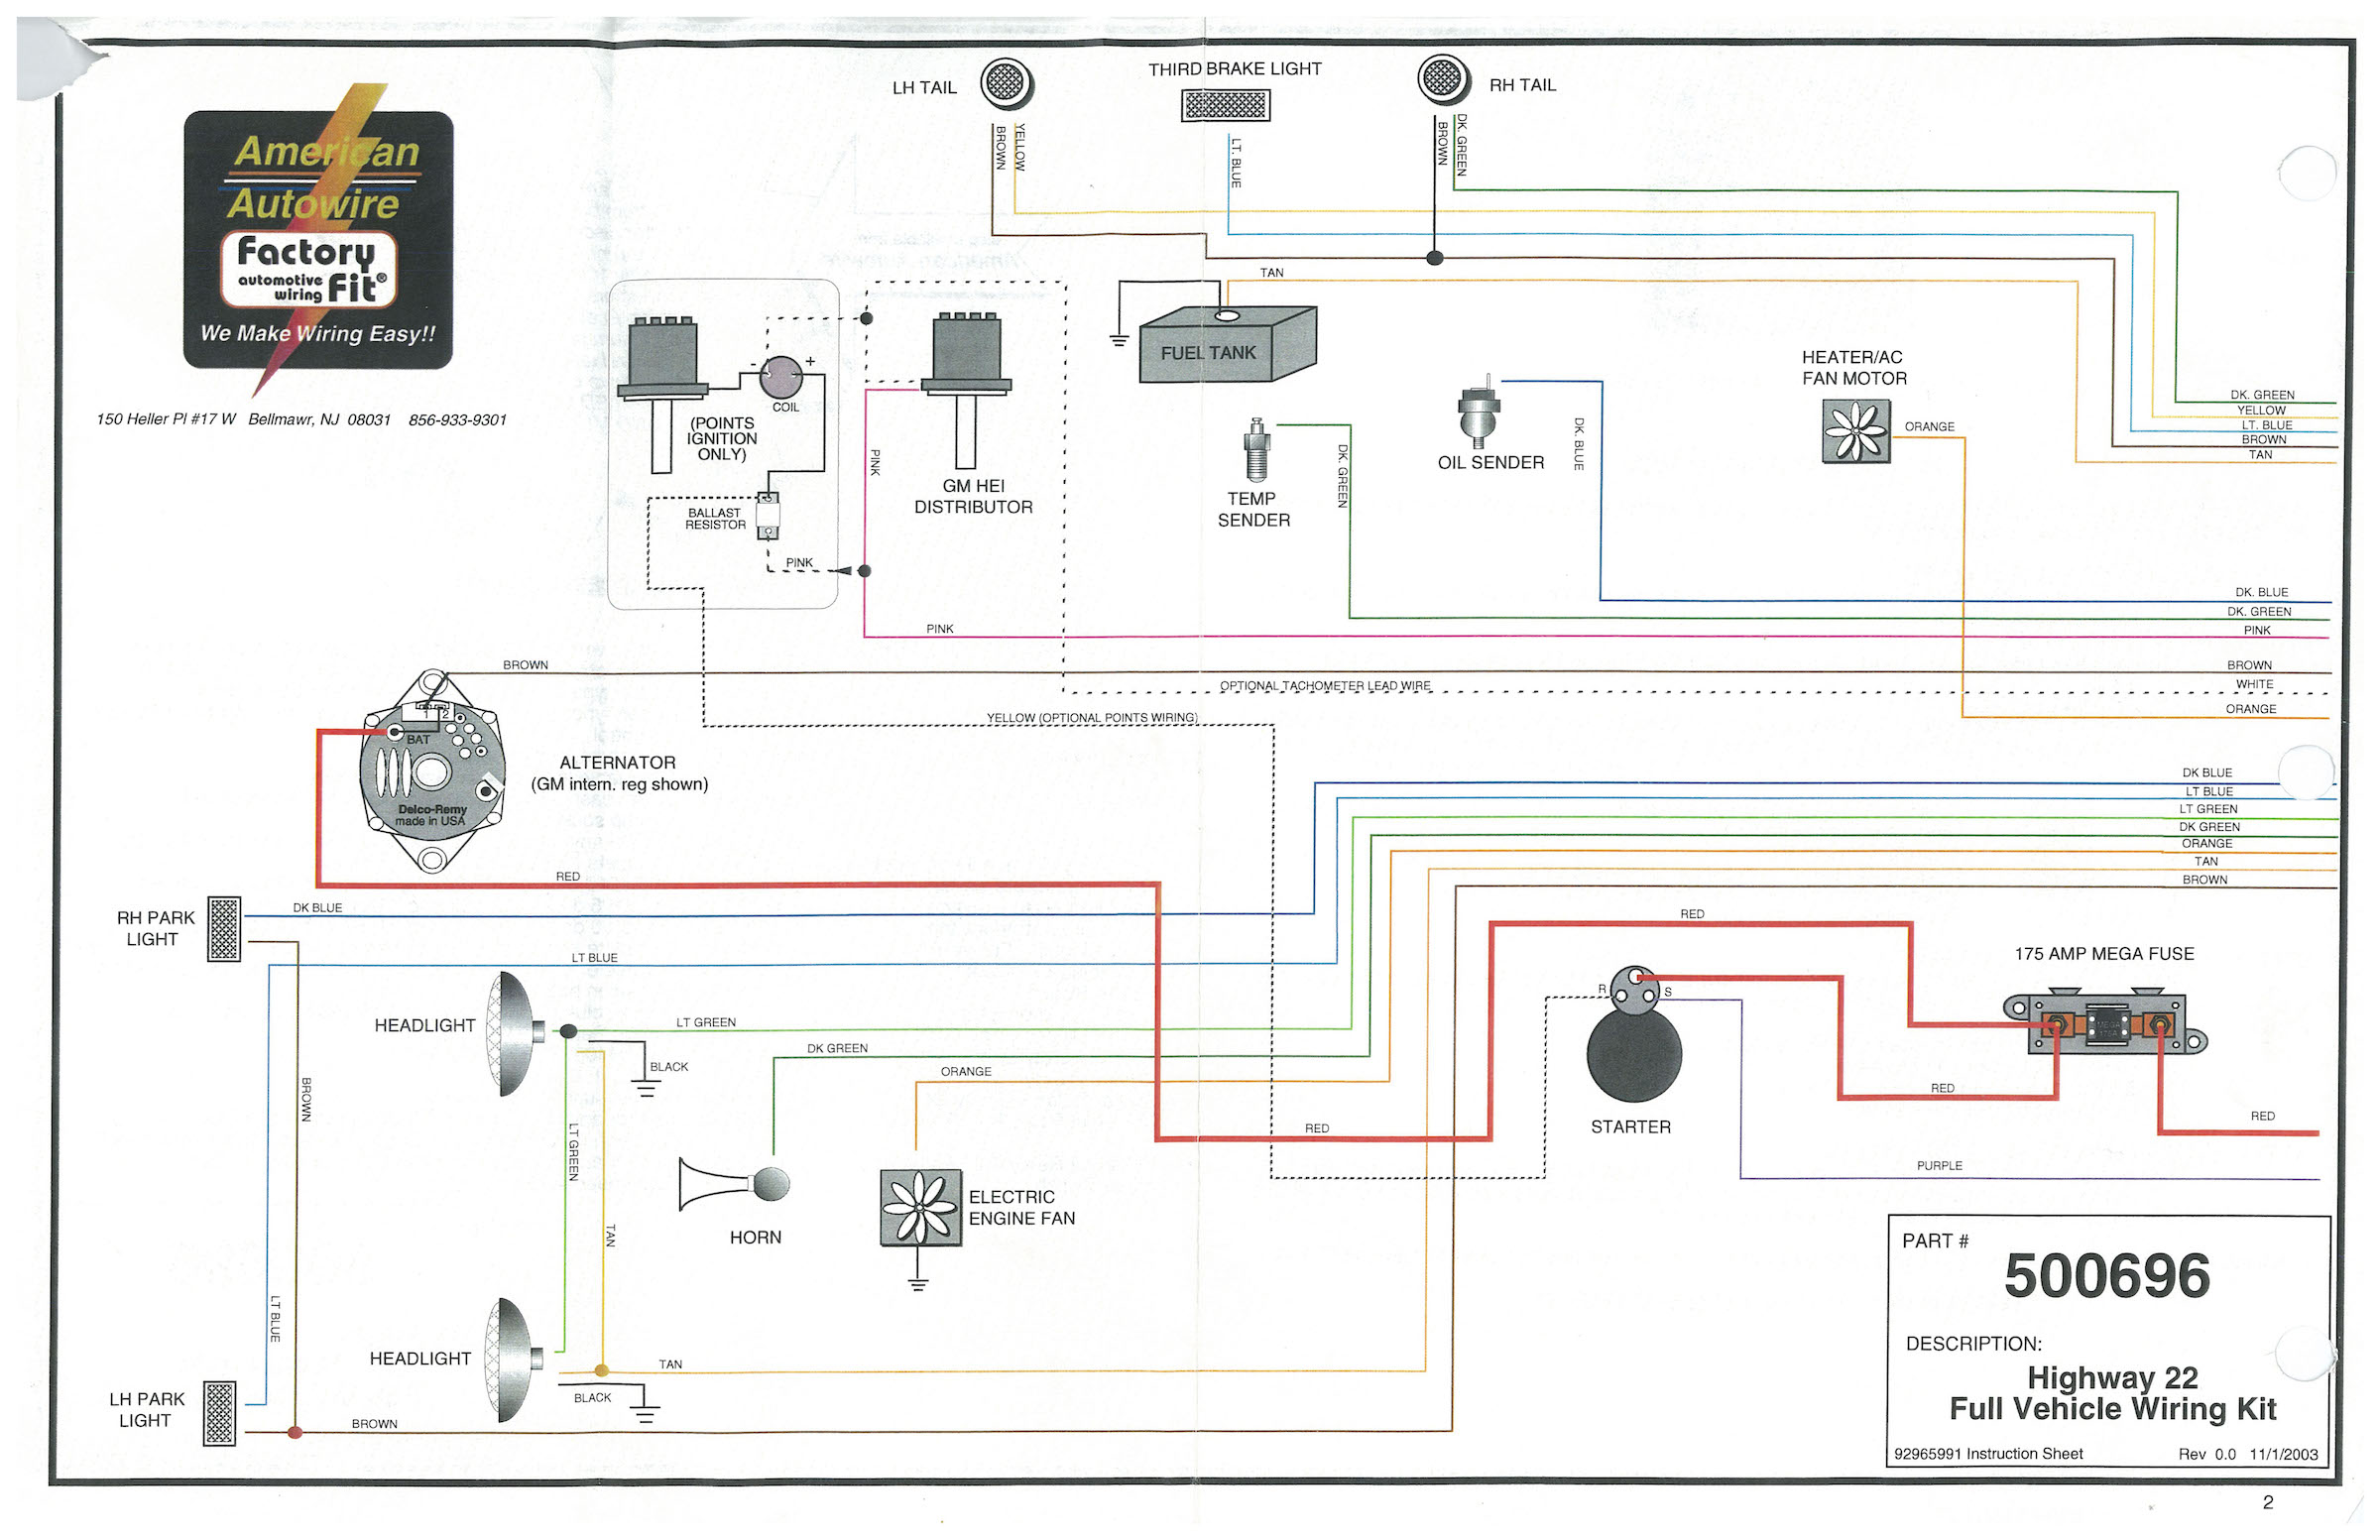 Chevrolet Ignition Wiring Diagram My 1947 Chevy Project